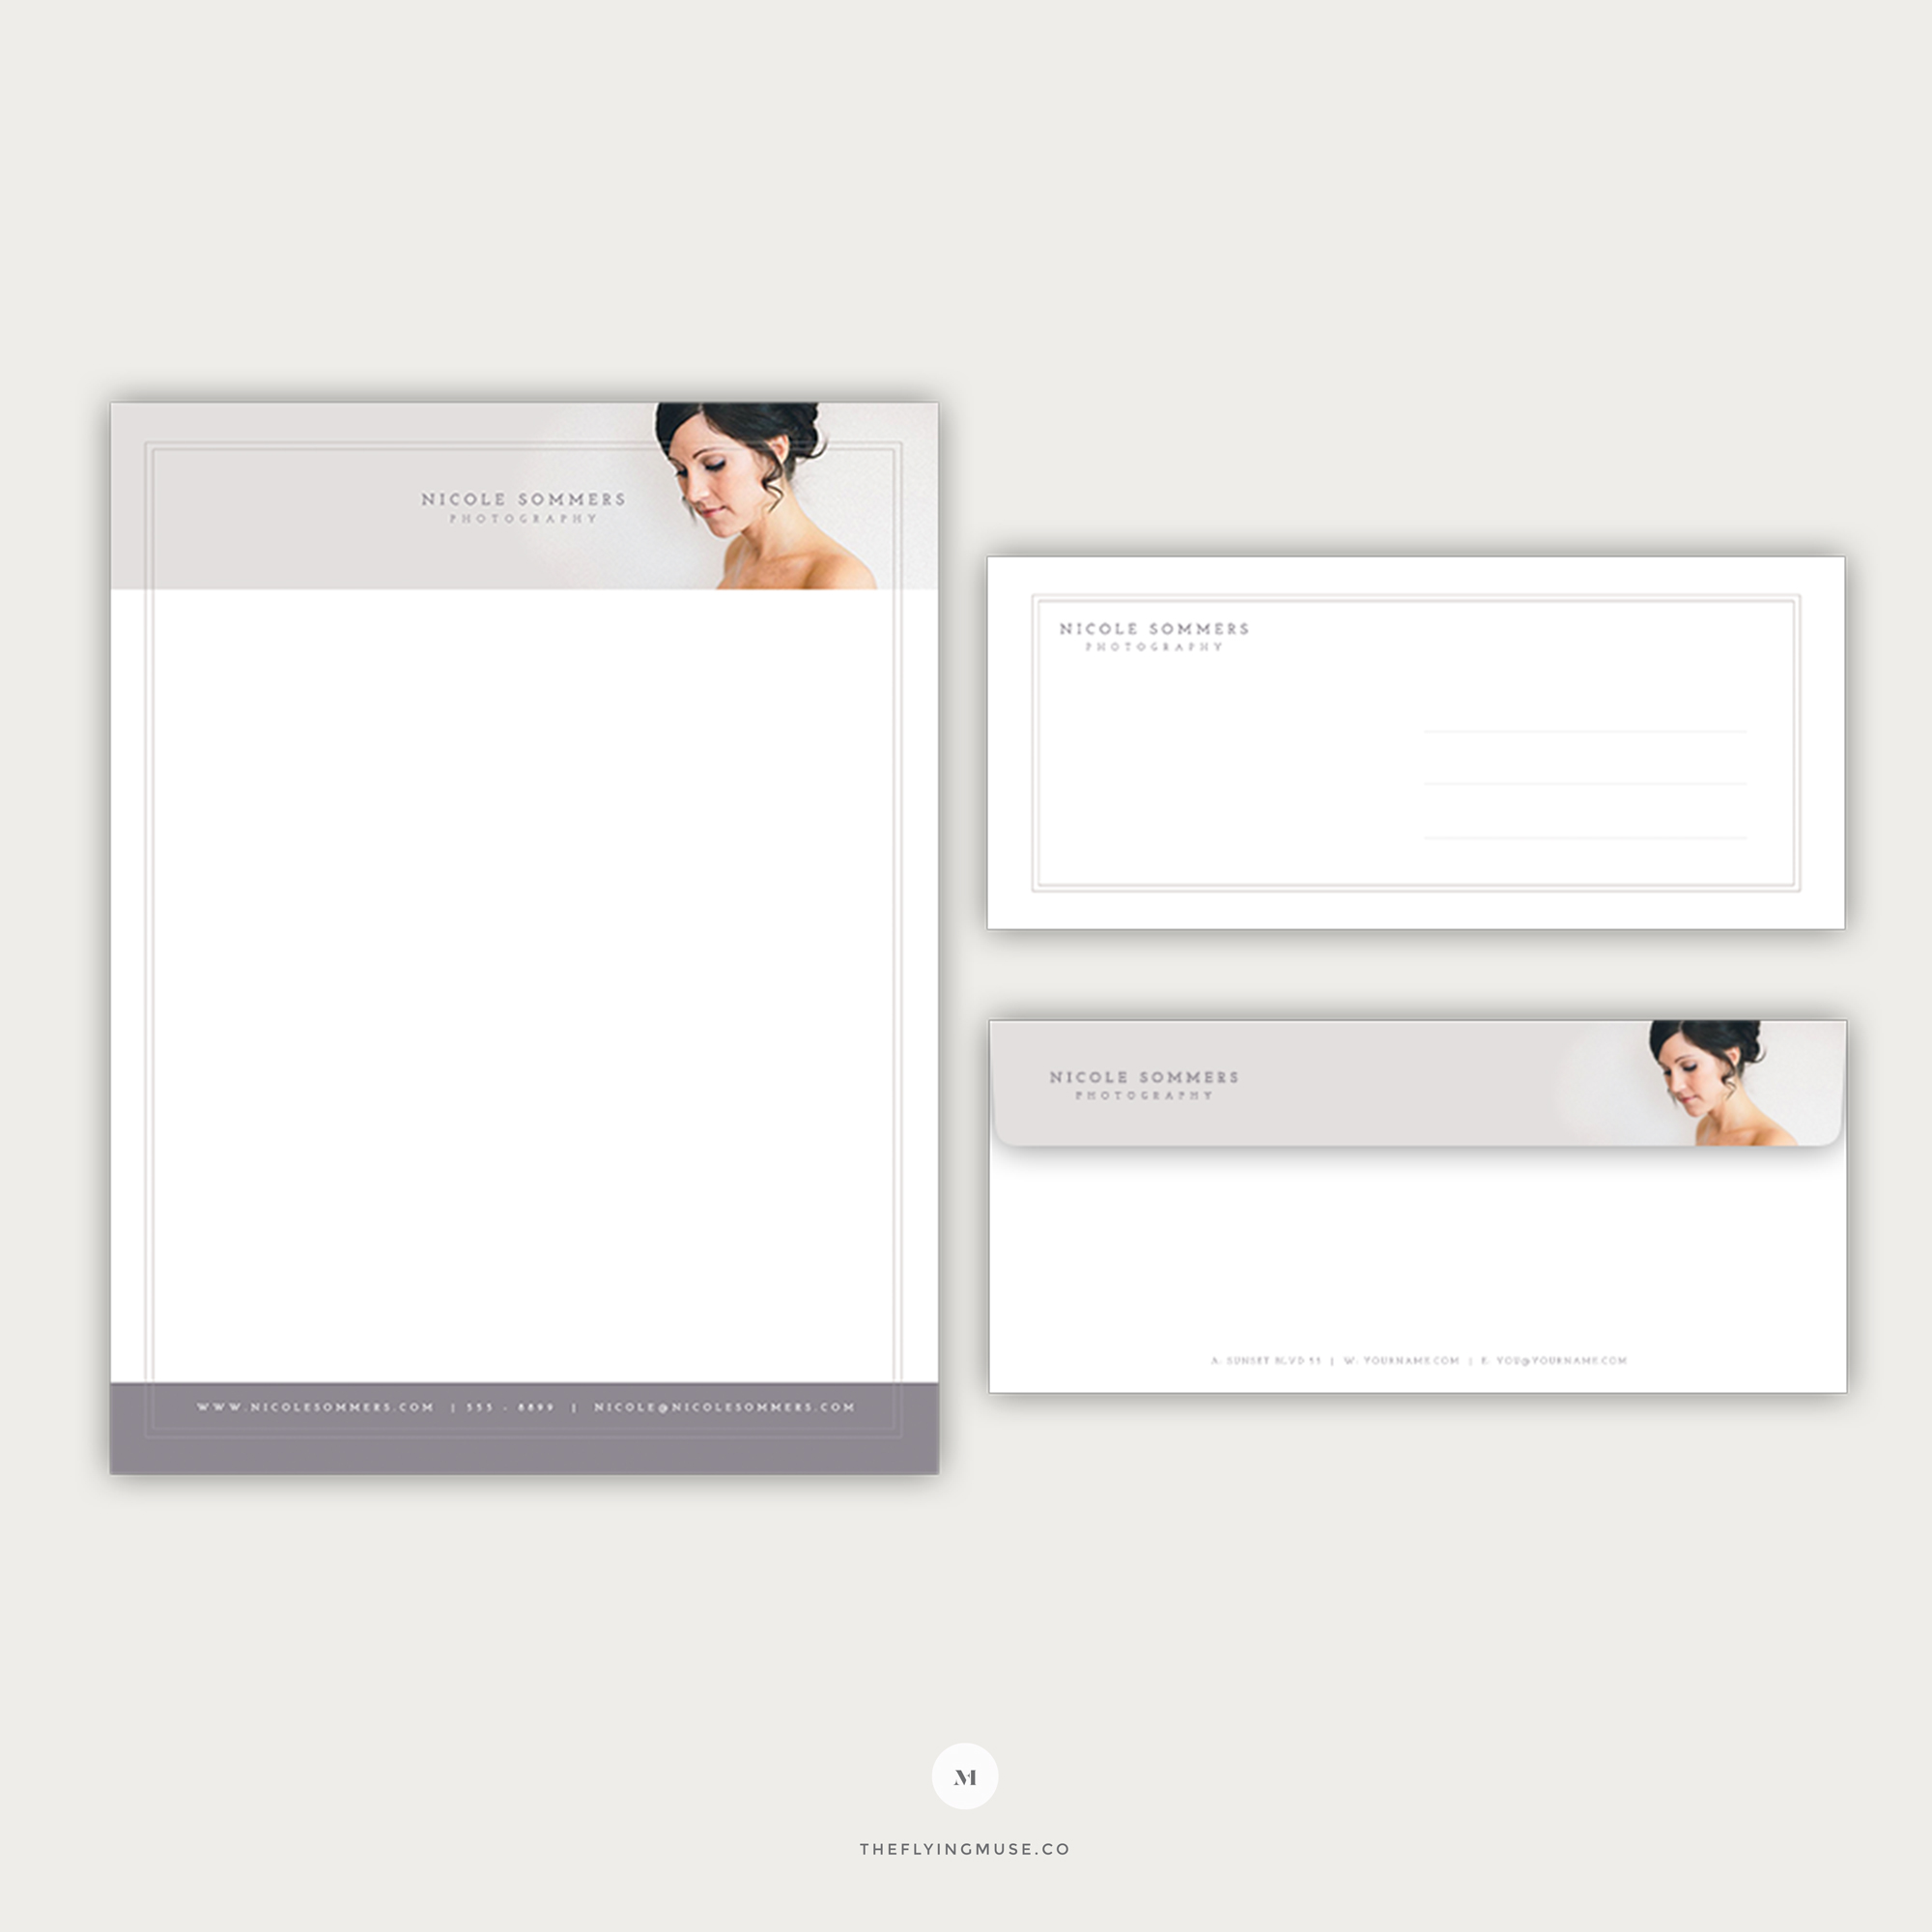 Stationery - Letterhead and Envelope Design for Wedding Photographers